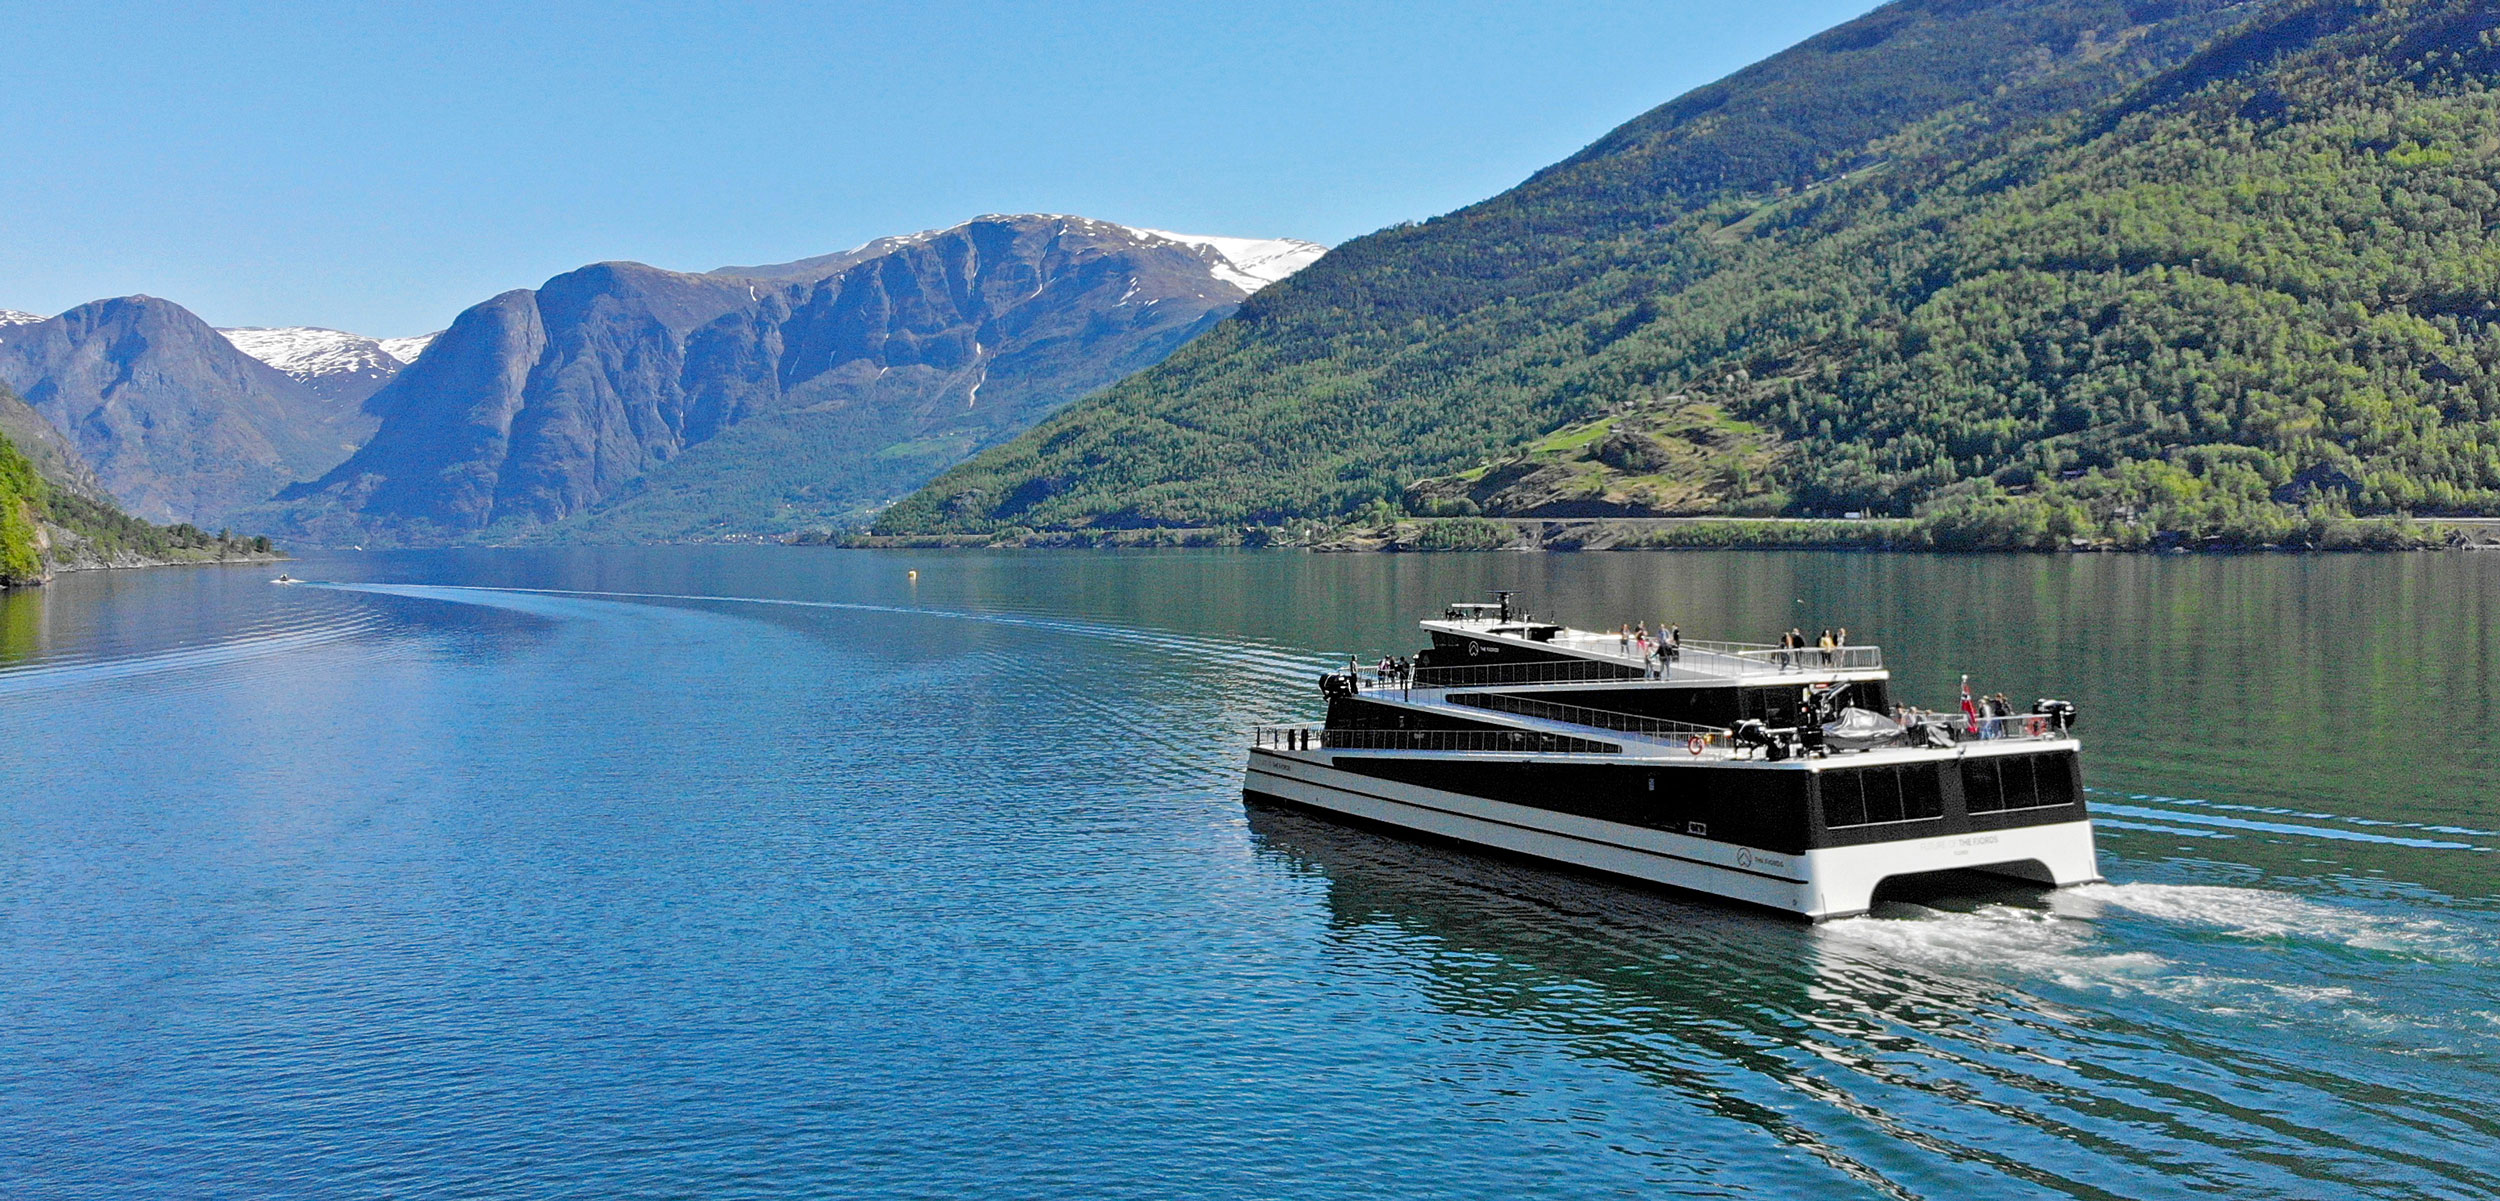 the electric ferry Future of the Fjords